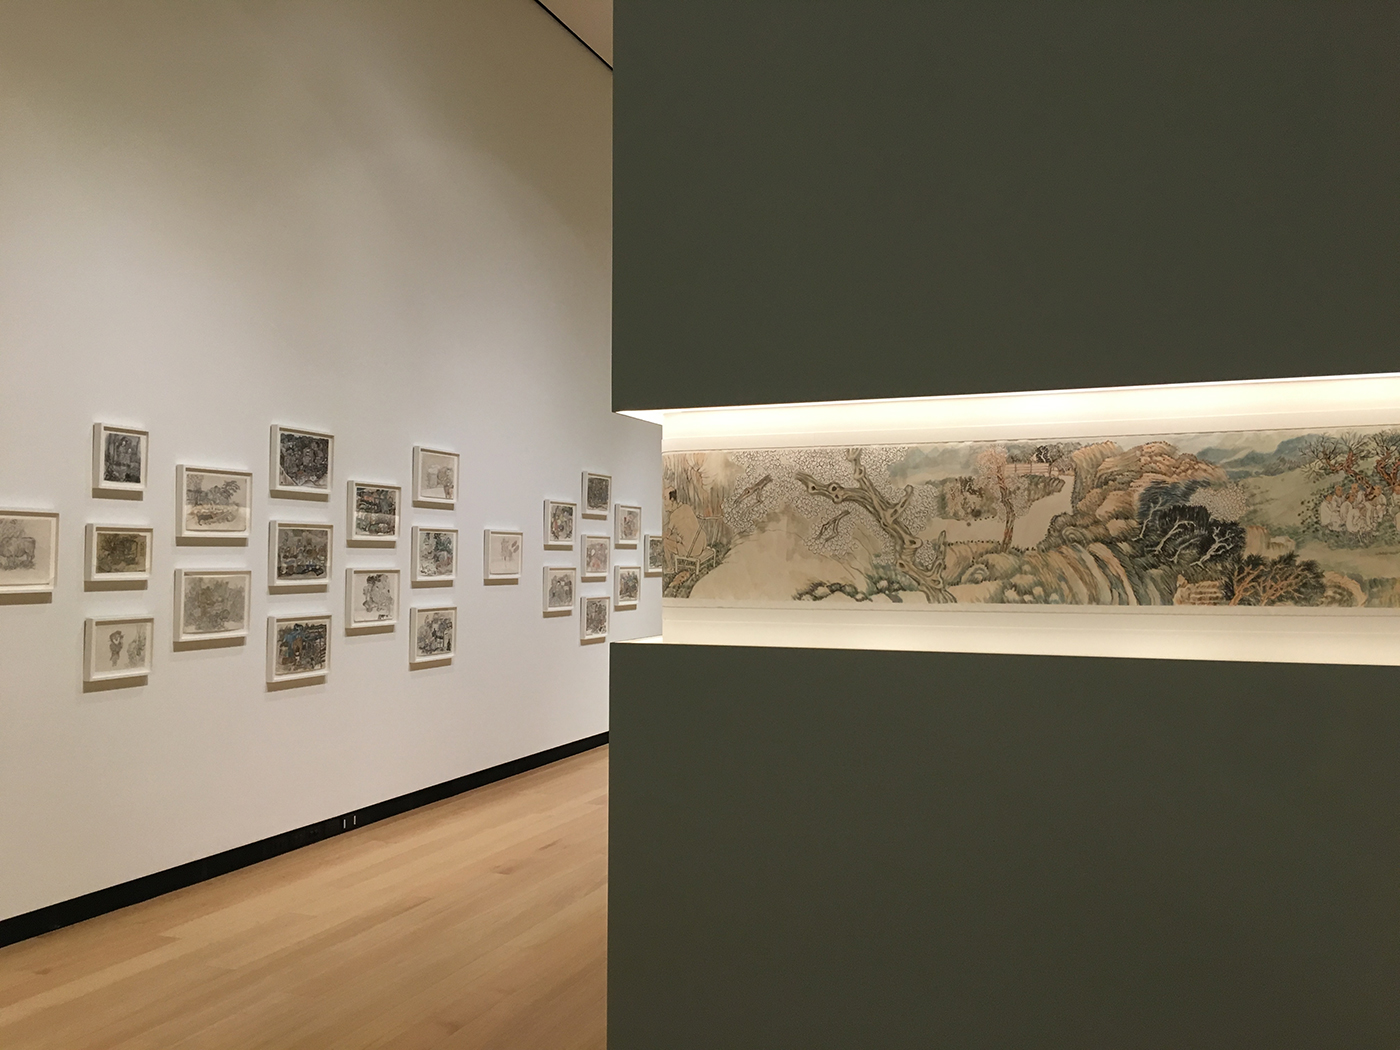 Installation view, 'Yun-Fei Ji: The Intimate Universe' at the Wellin Museum of Art (photo by the author for Hyperallergic) (click to enlarge)